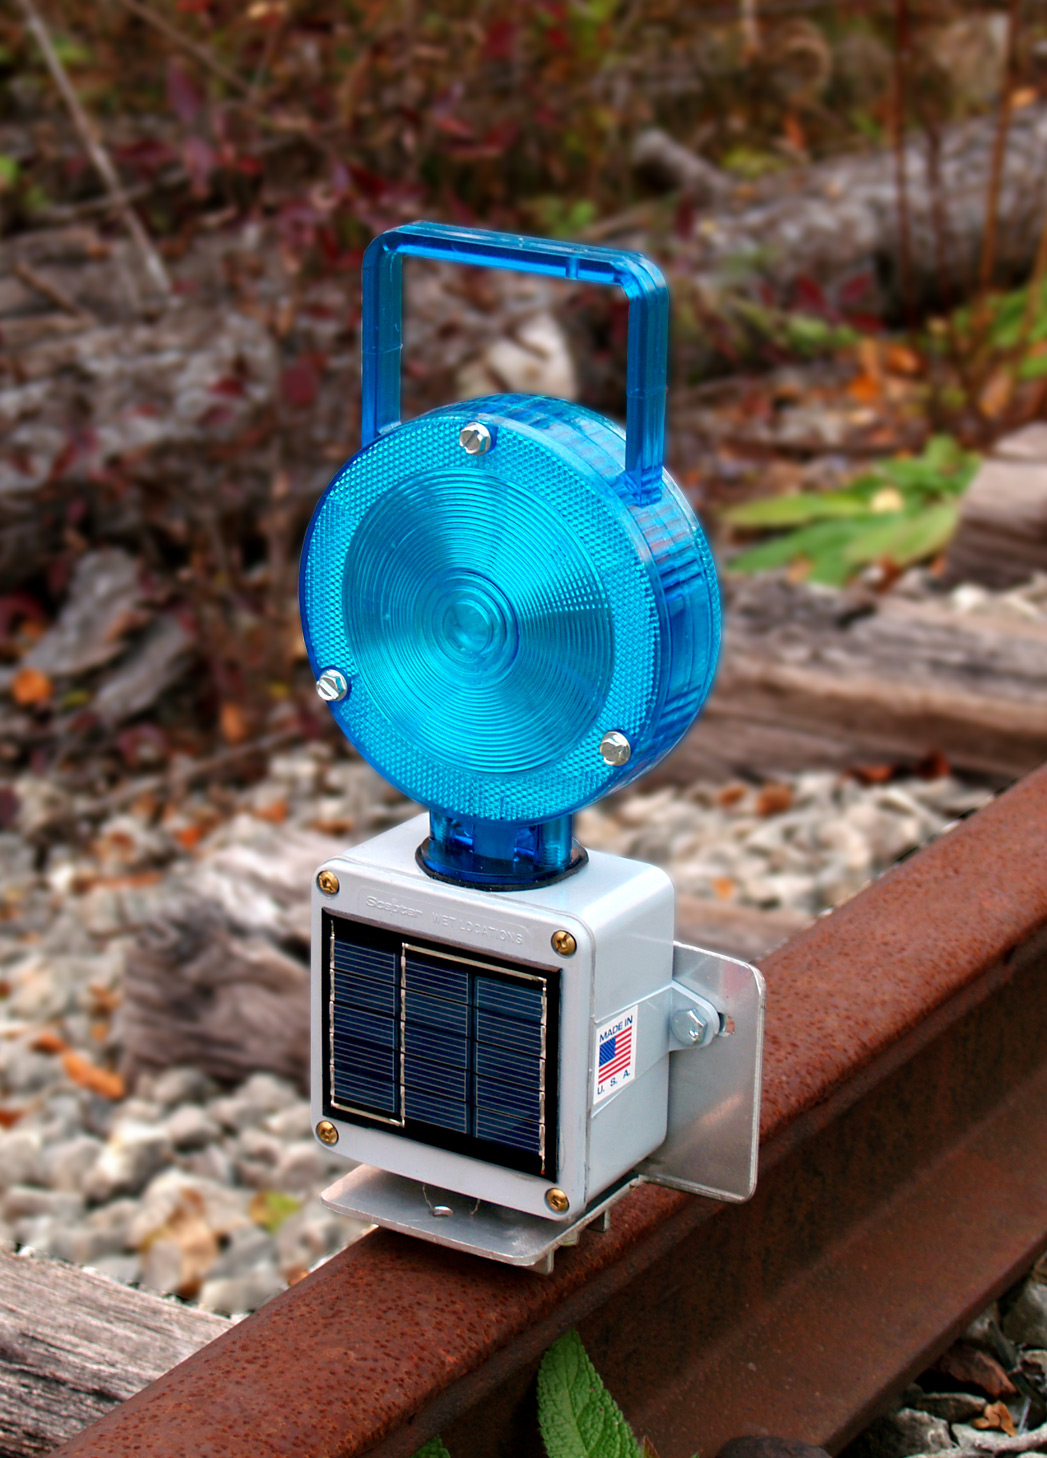 Aldon railroad solar powered magnetic base blue flashing light